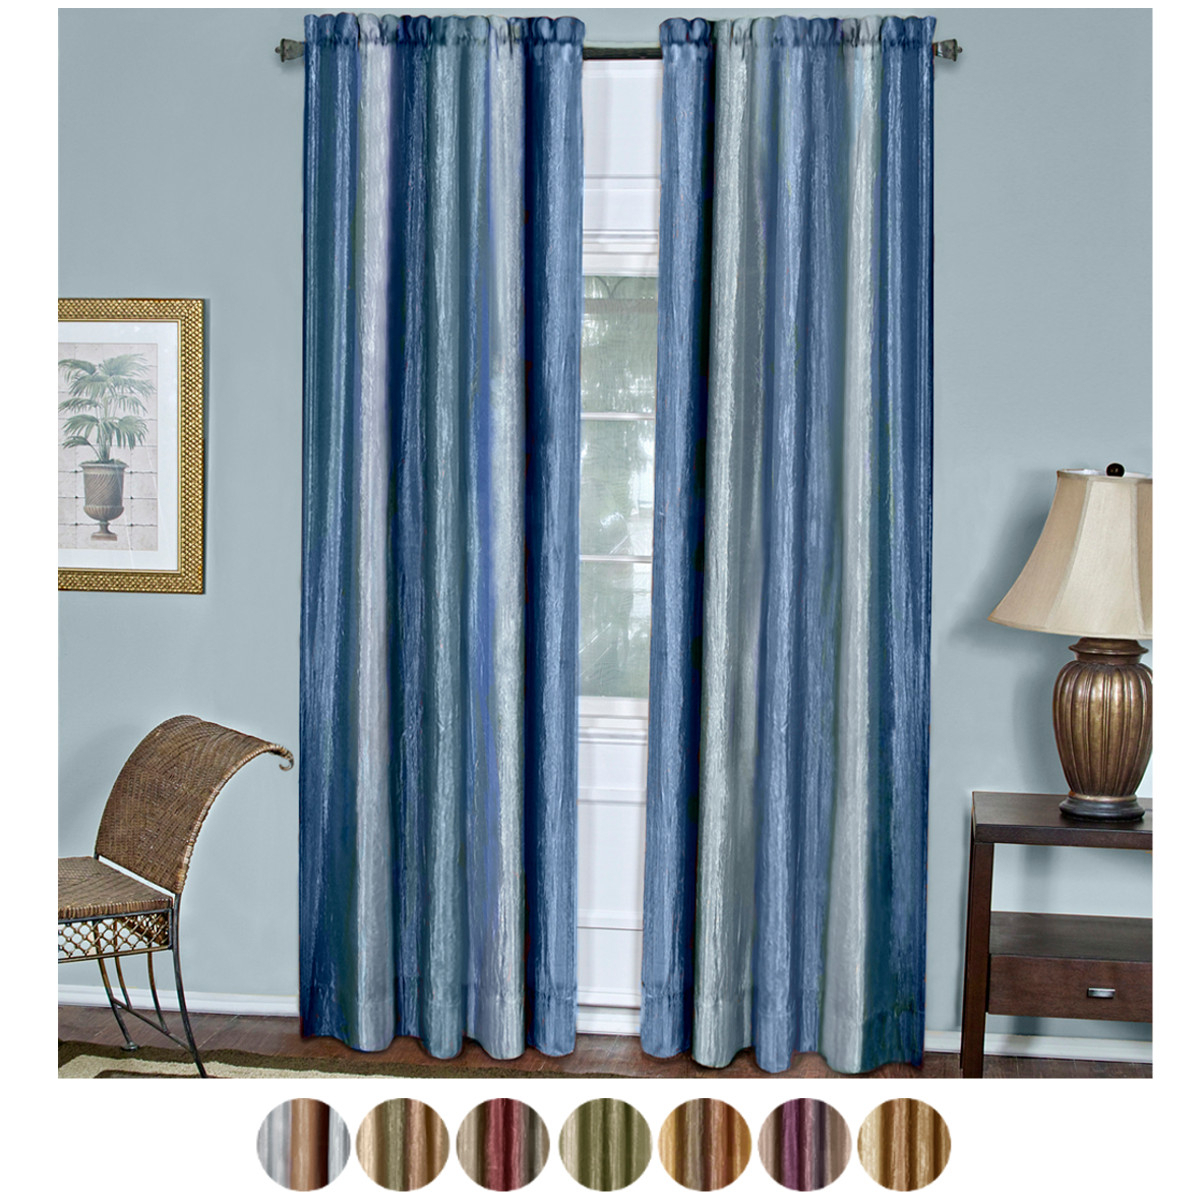 Details About Multi Color 2 Panel Pack Striped Modern Semi Sheer Window Curtain Drape Within Micro Striped Semi Sheer Window Curtain Pieces (View 11 of 20)